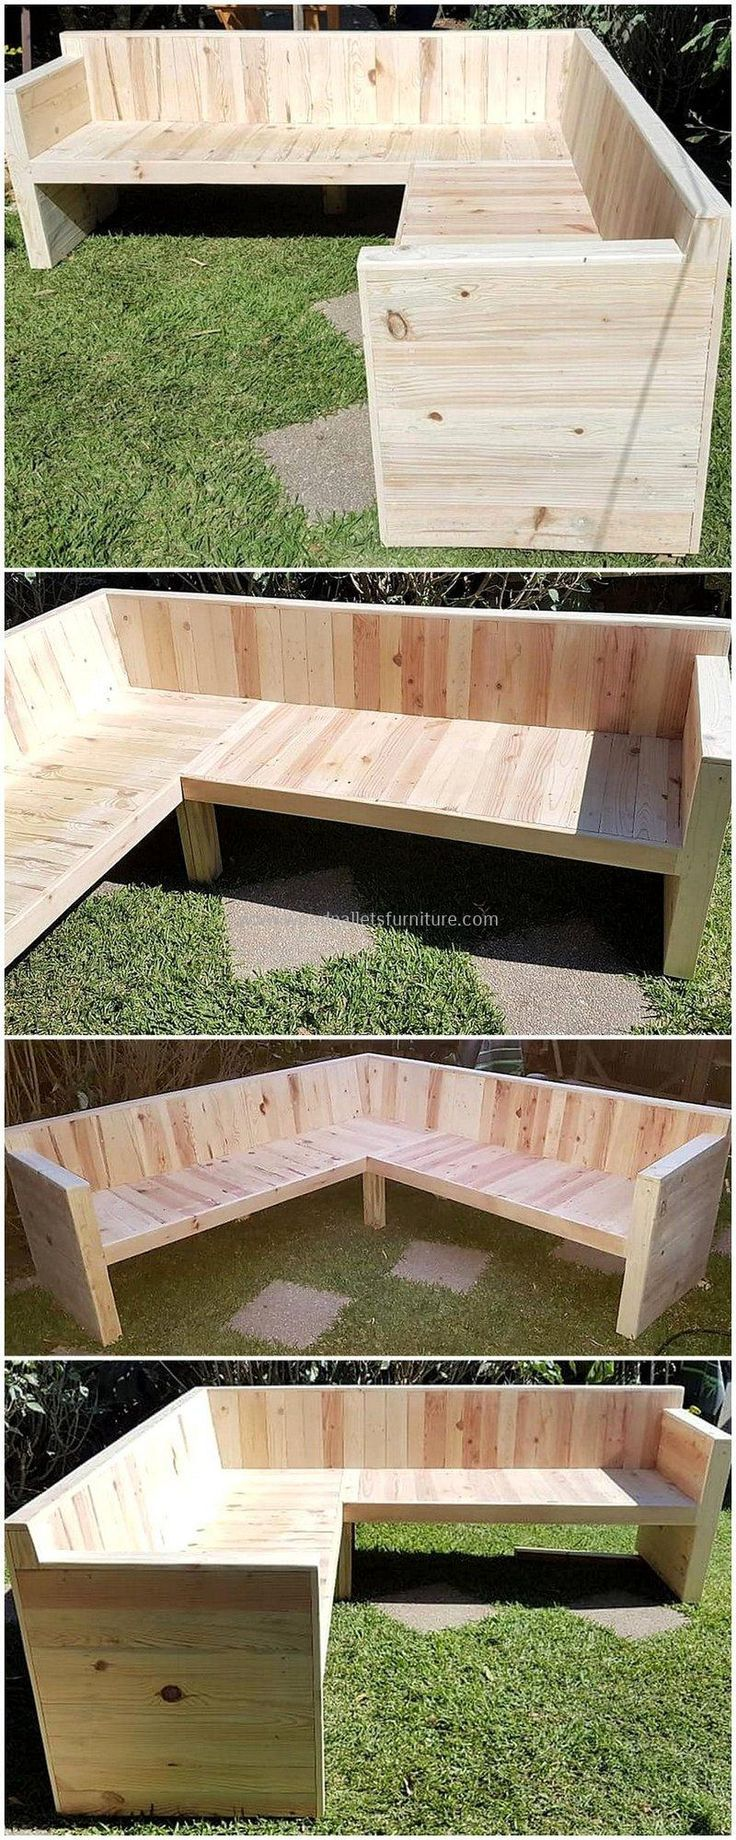 Now Get This Fantastic Idea For Your House Outdoor And Garden Areaake The Areas